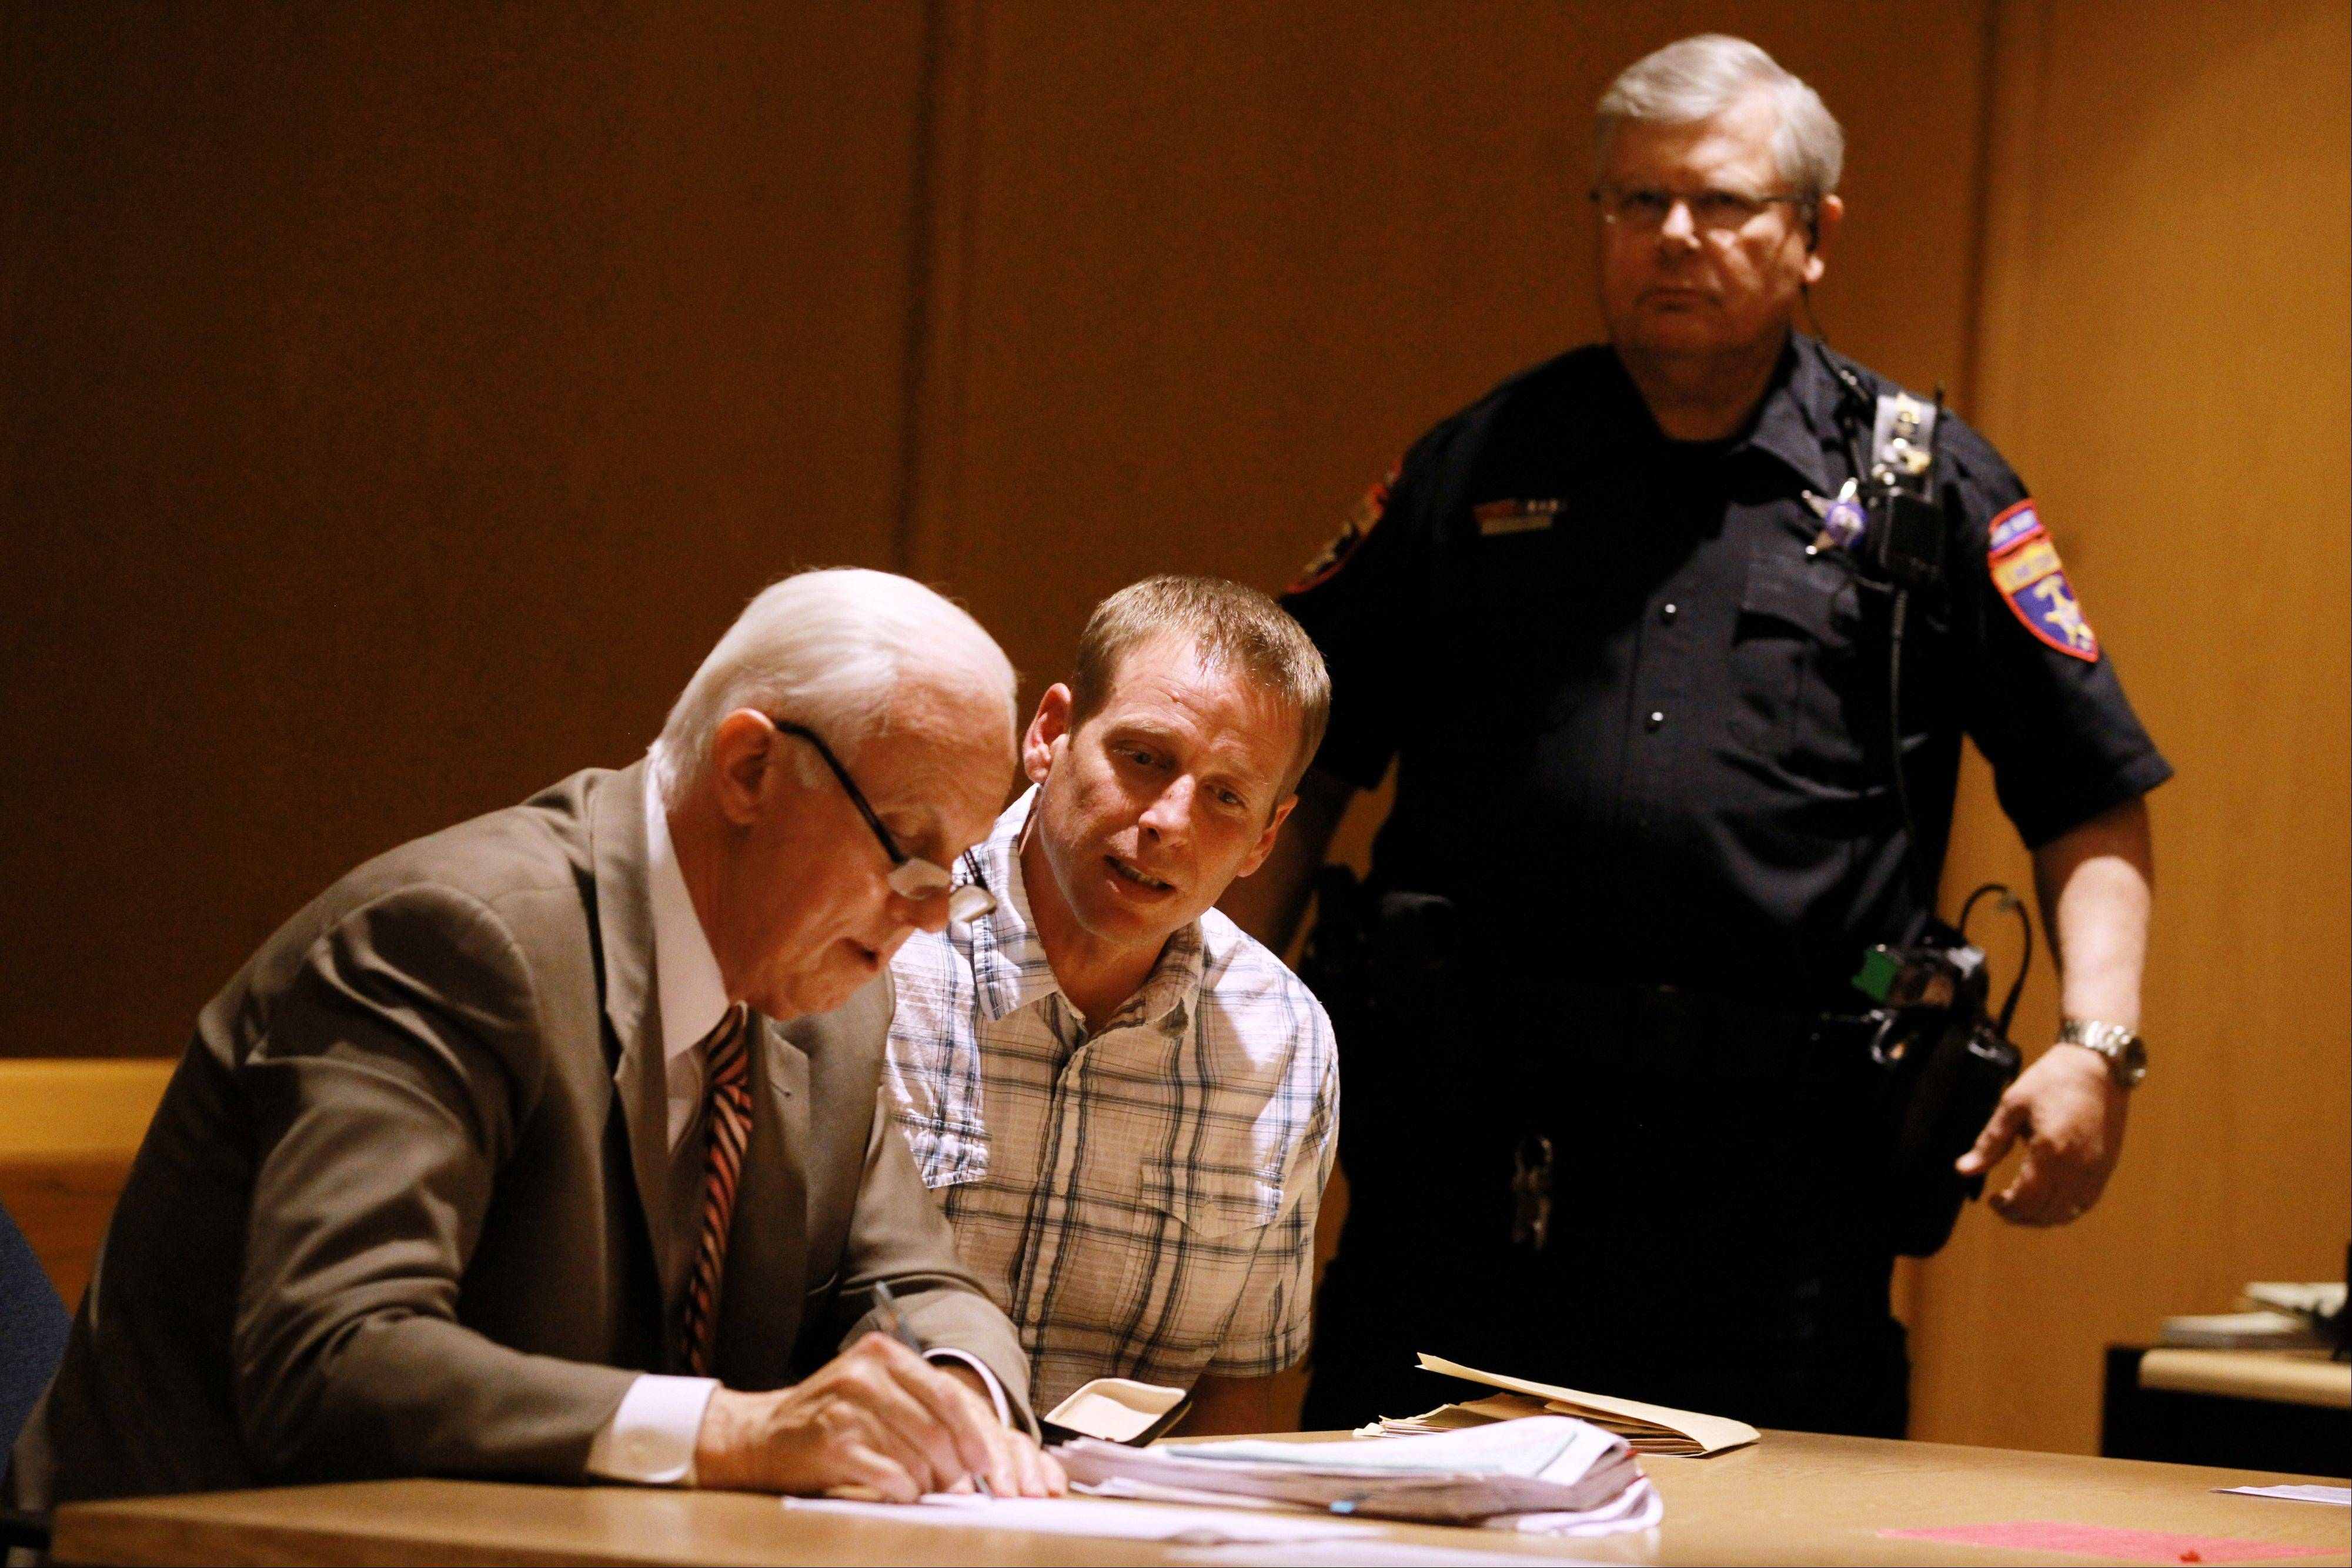 Timothy Morrow, 43, of Round Lake Beach, center, speaks with his defense attorney, Mike Norris, left, after being sentenced Wednesday to 13 years in prison for an eighth DUI conviction.